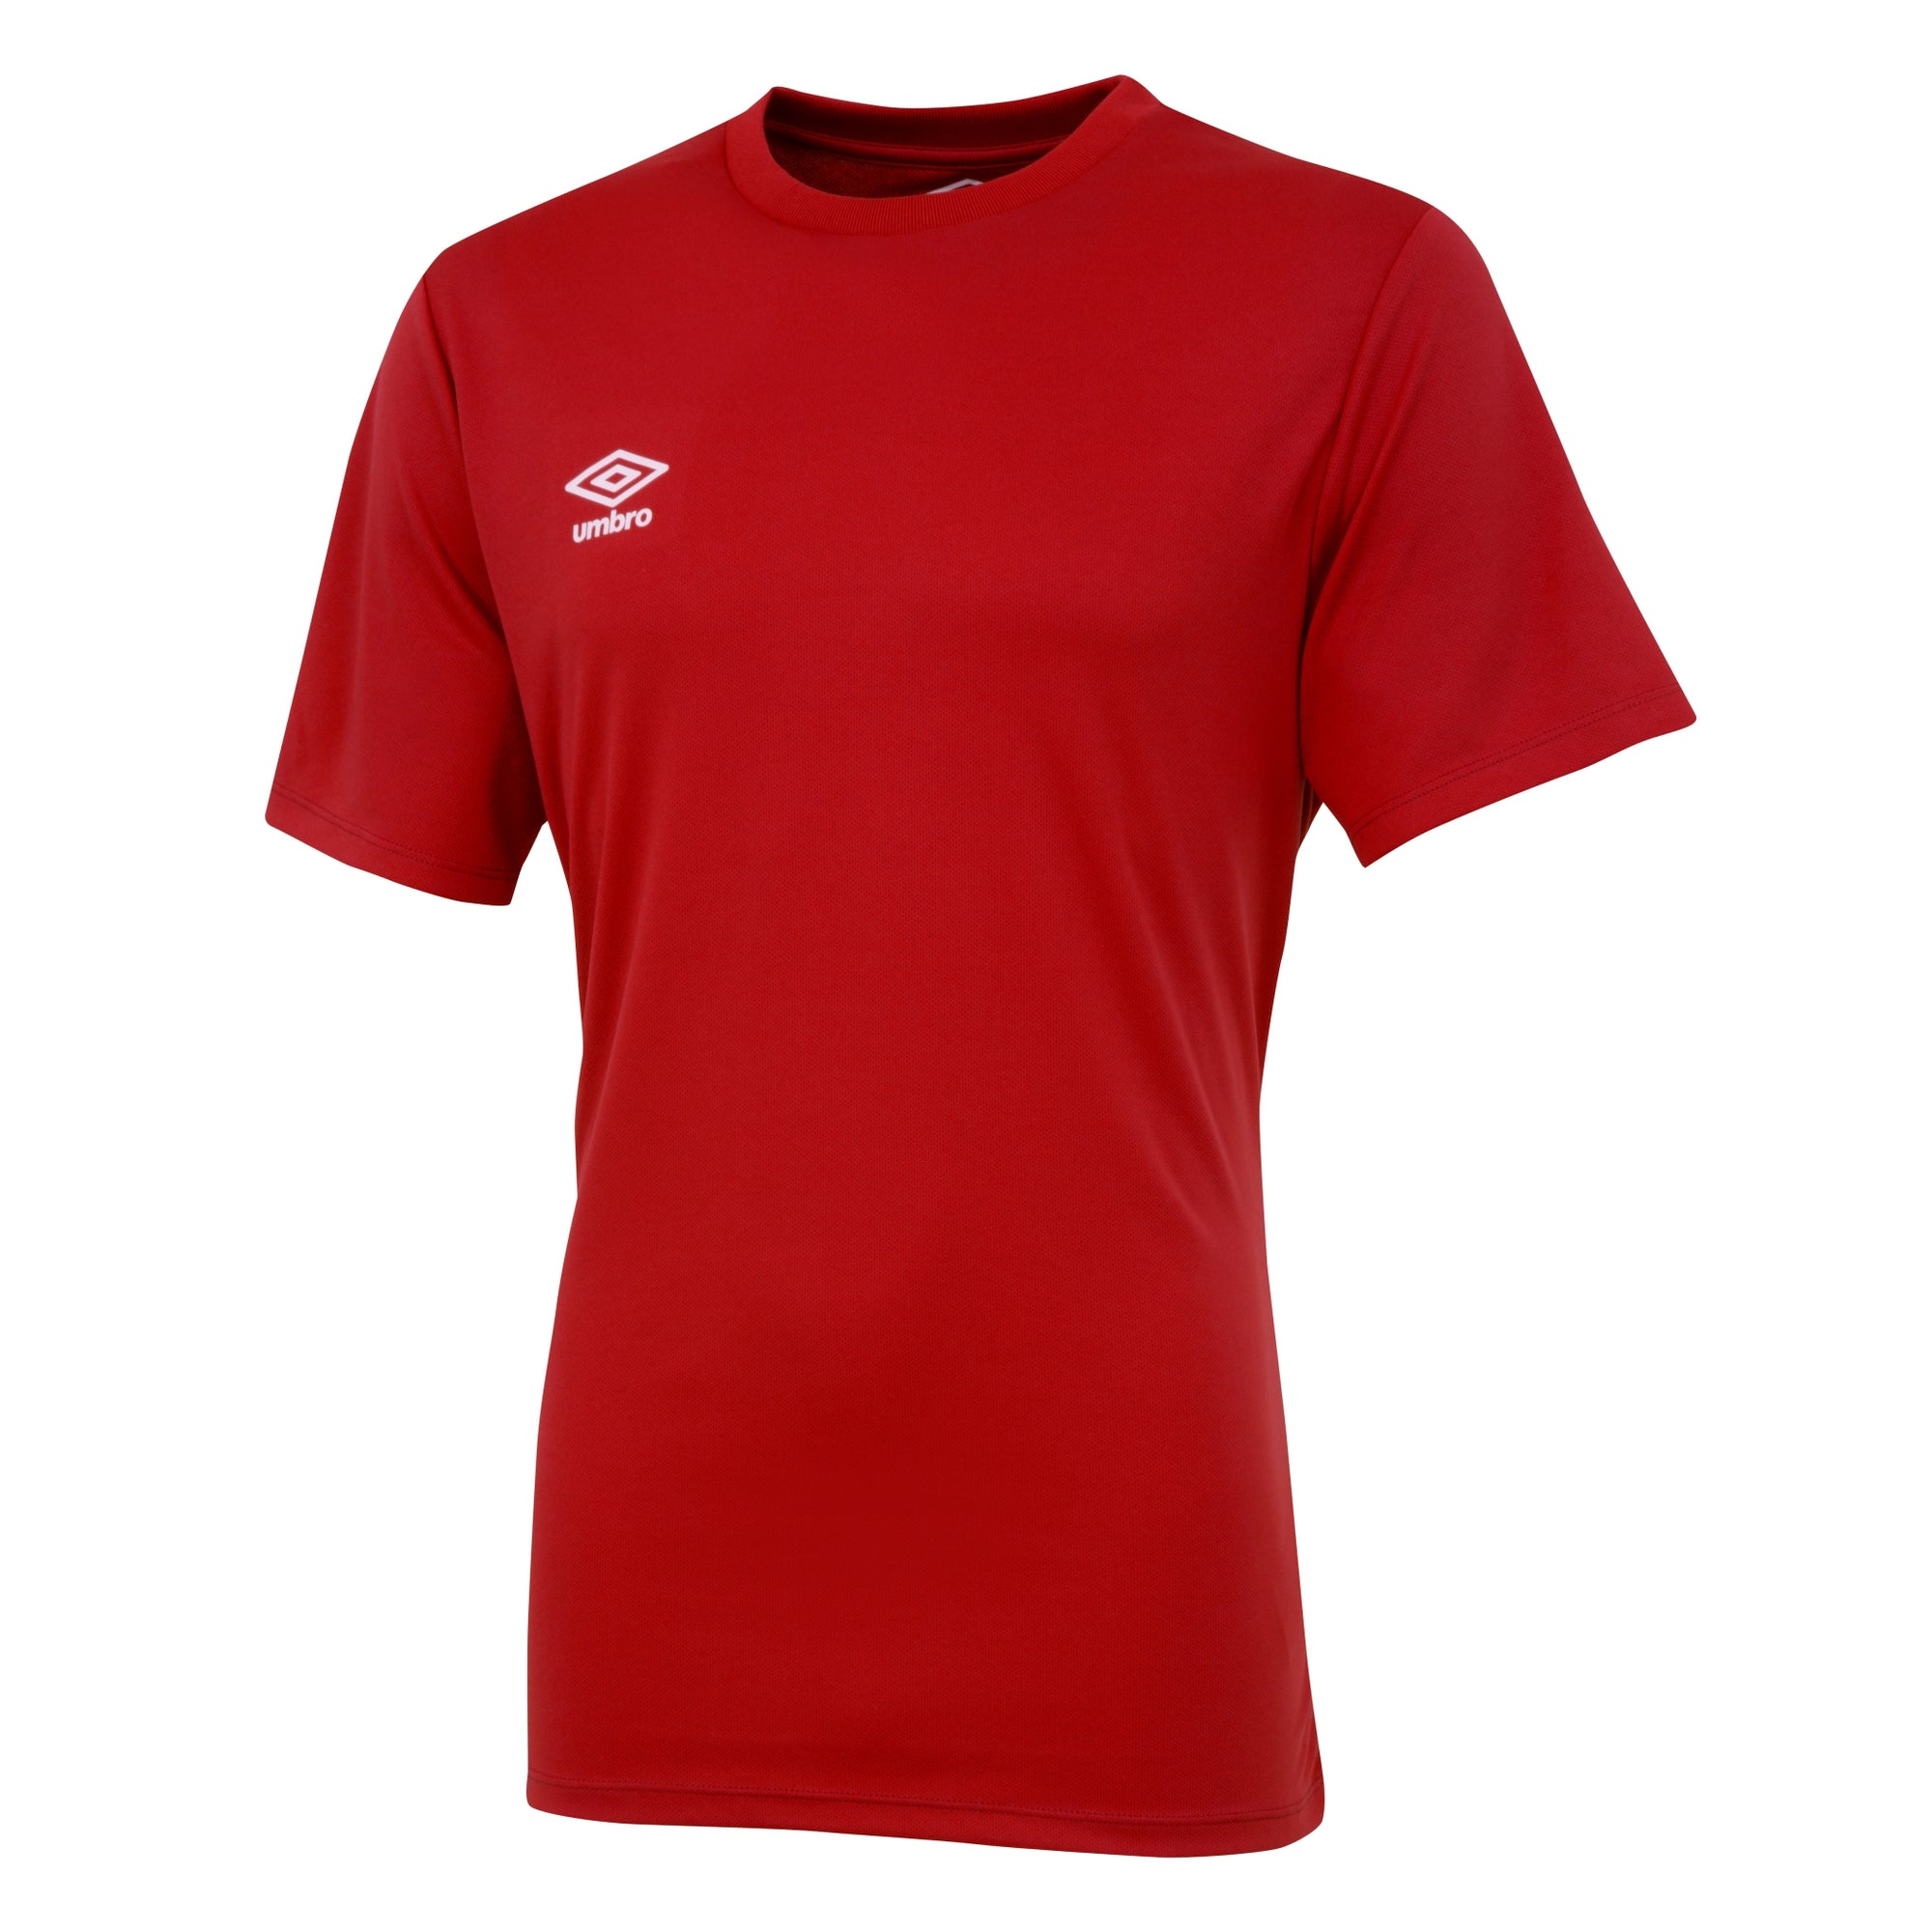 Umbro short sleeve club jersey in vermillion (red) with white printed Umbro logo